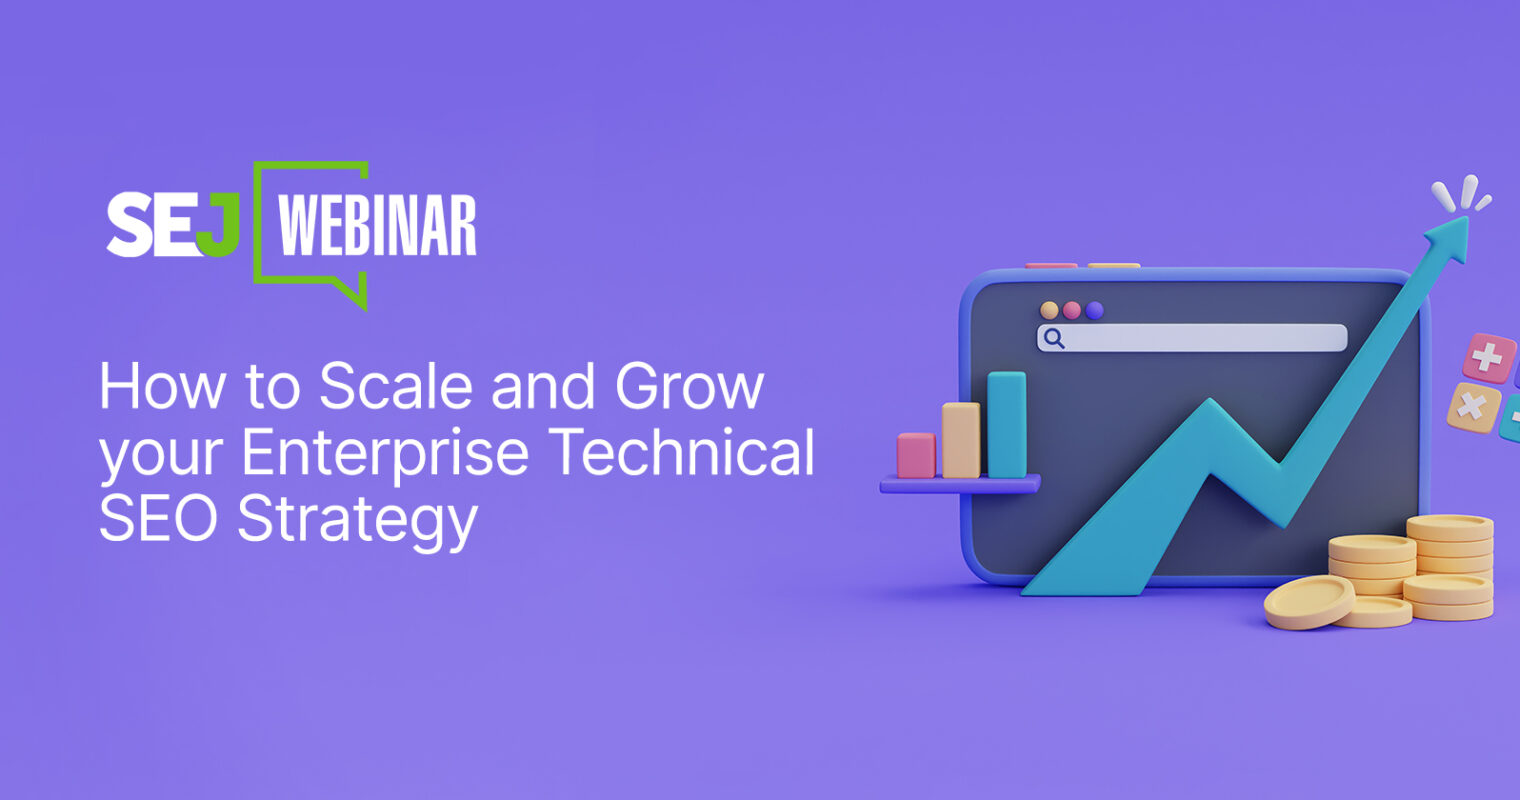 Top SEO Strategies to Scale Your Enterprise Ecommerce Site [Webinar]